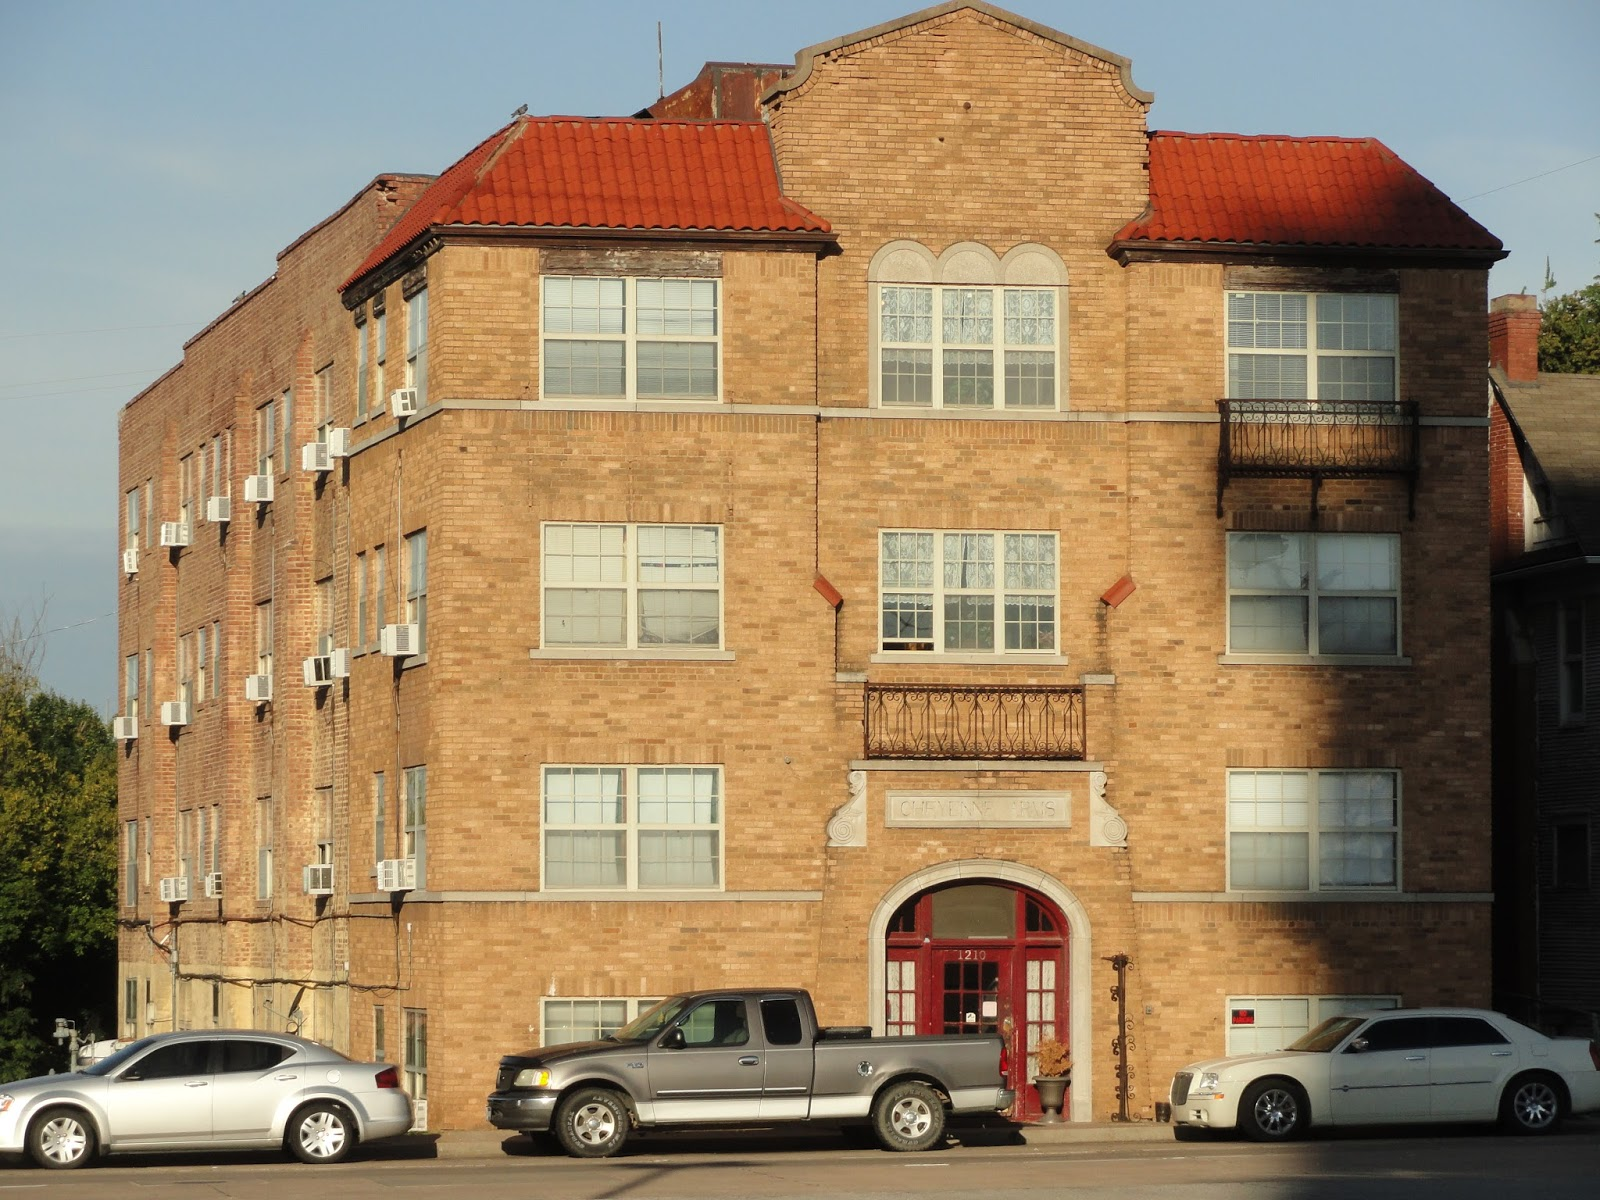 Cheyenne Arms Is A Modest Apartment Building Not Too Far From The Ambassador